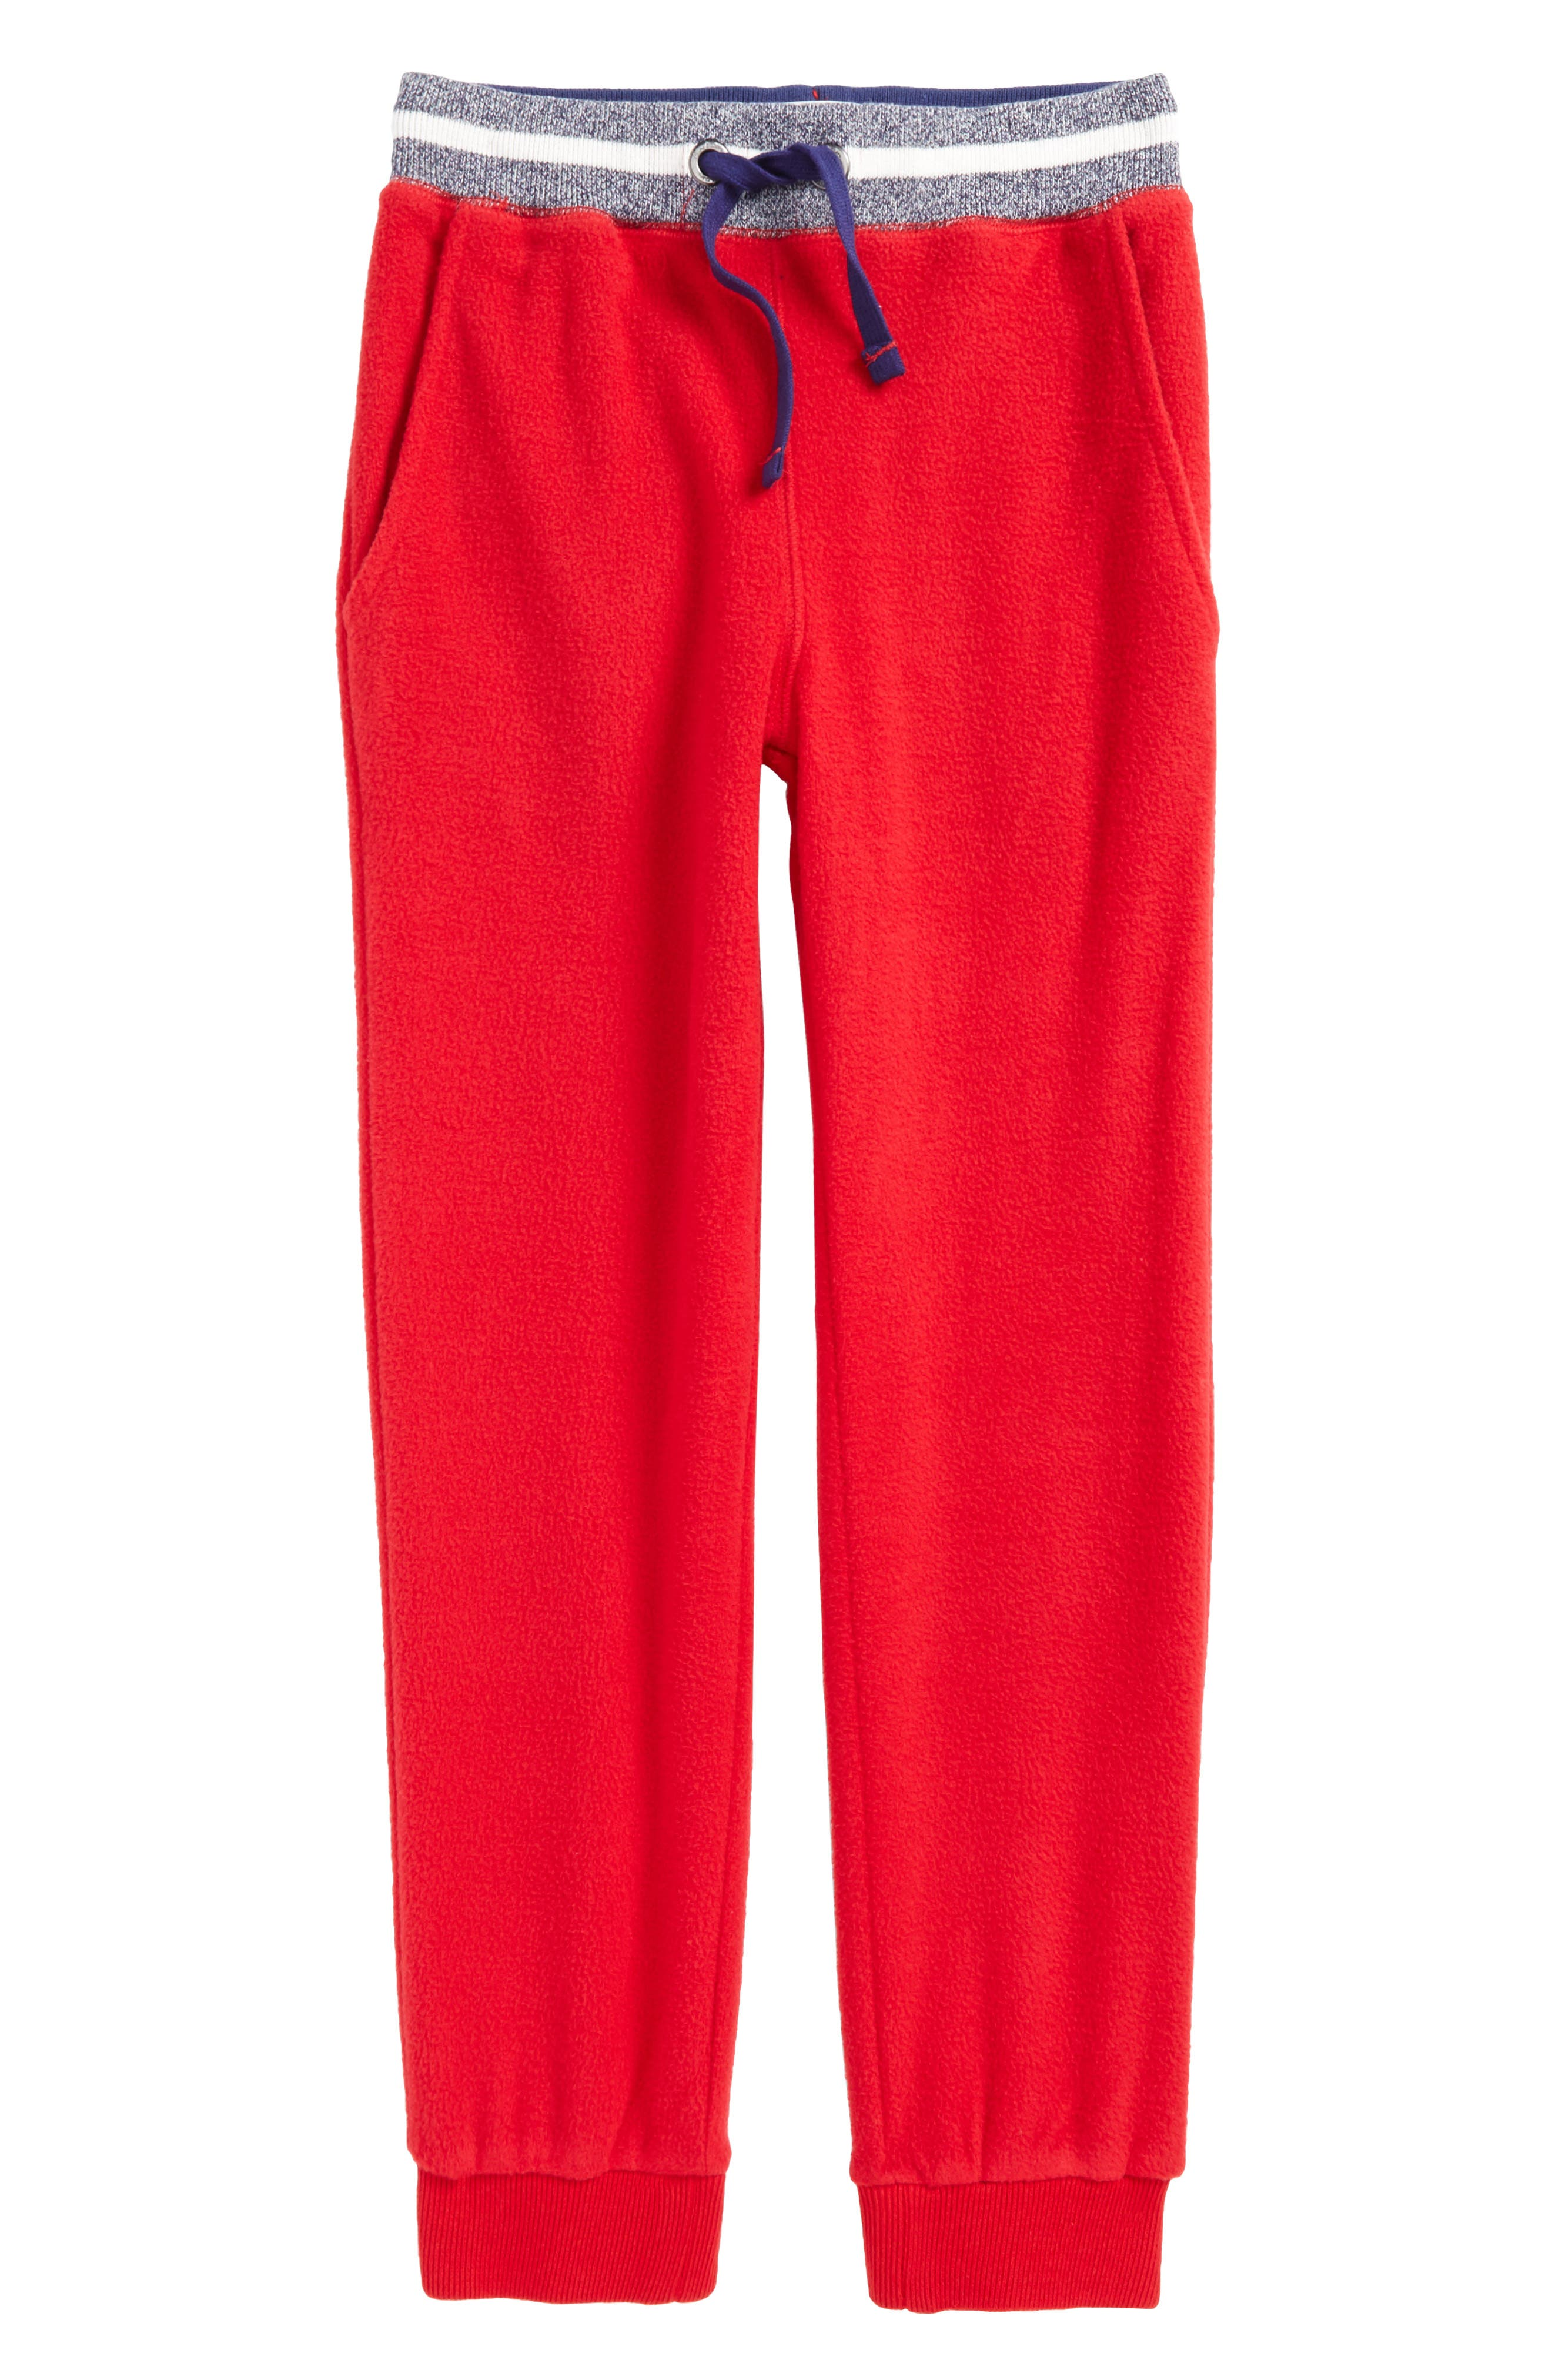 Alternate Image 1 Selected - Mini Boden Microfleece Jogger Pants (Toddler Boys, Little Boys & Big Boys)